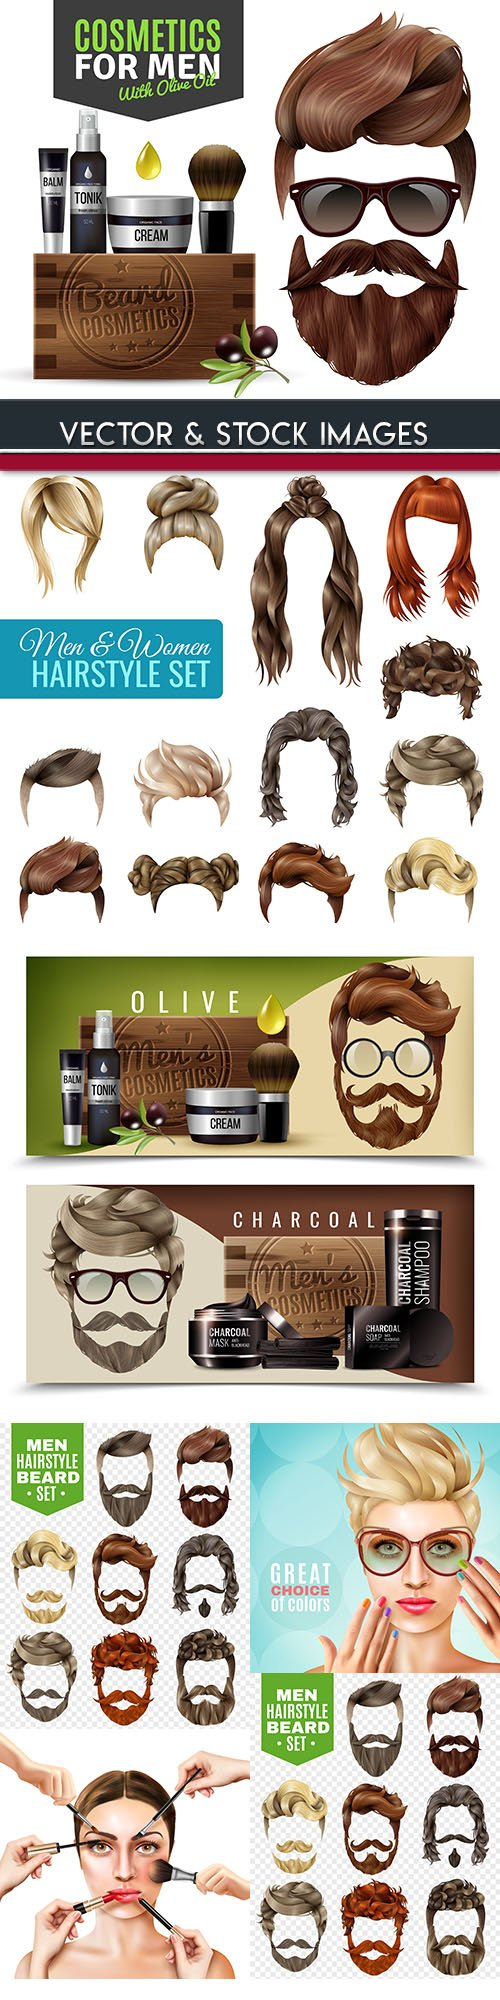 Hairstyle, female and male cosmetology 3d illustration